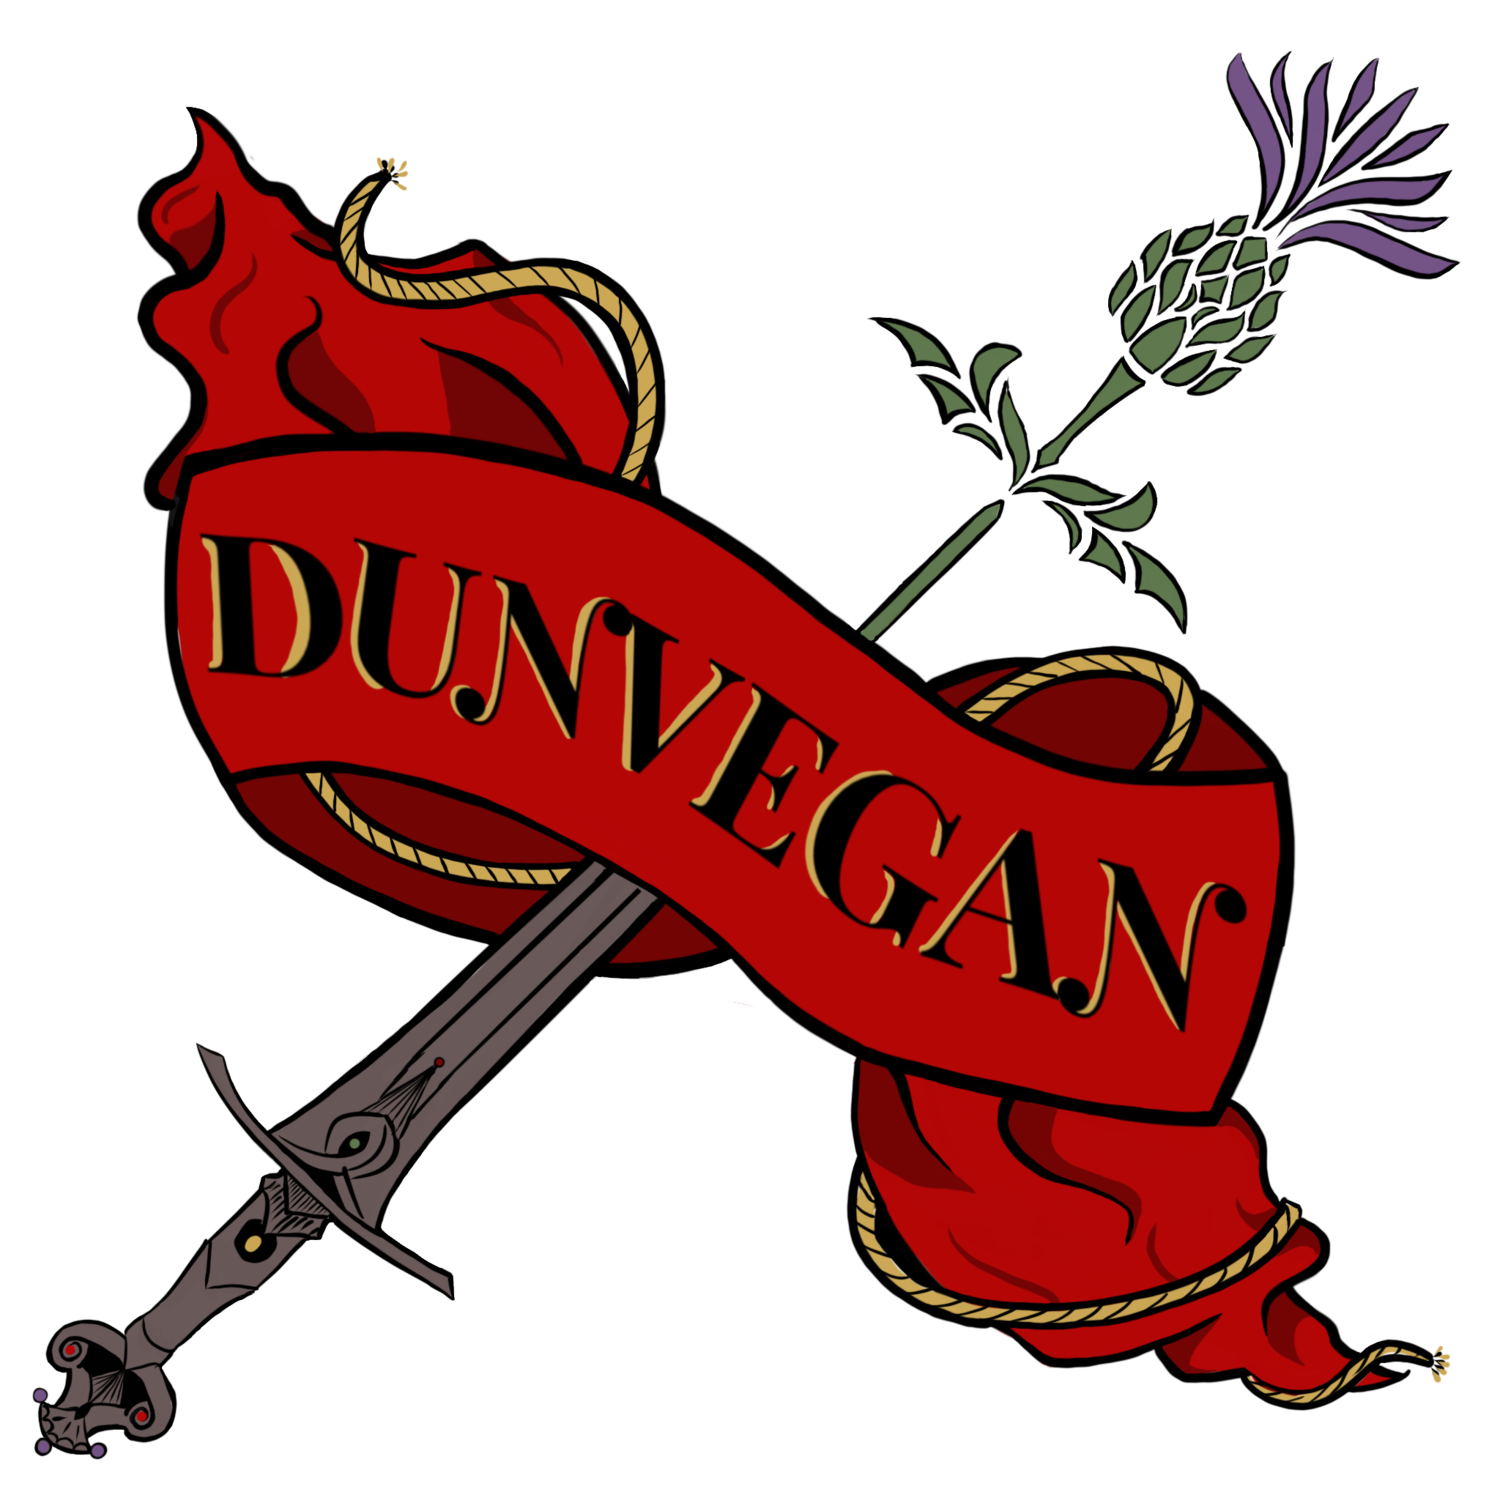 Dunvegan Productions